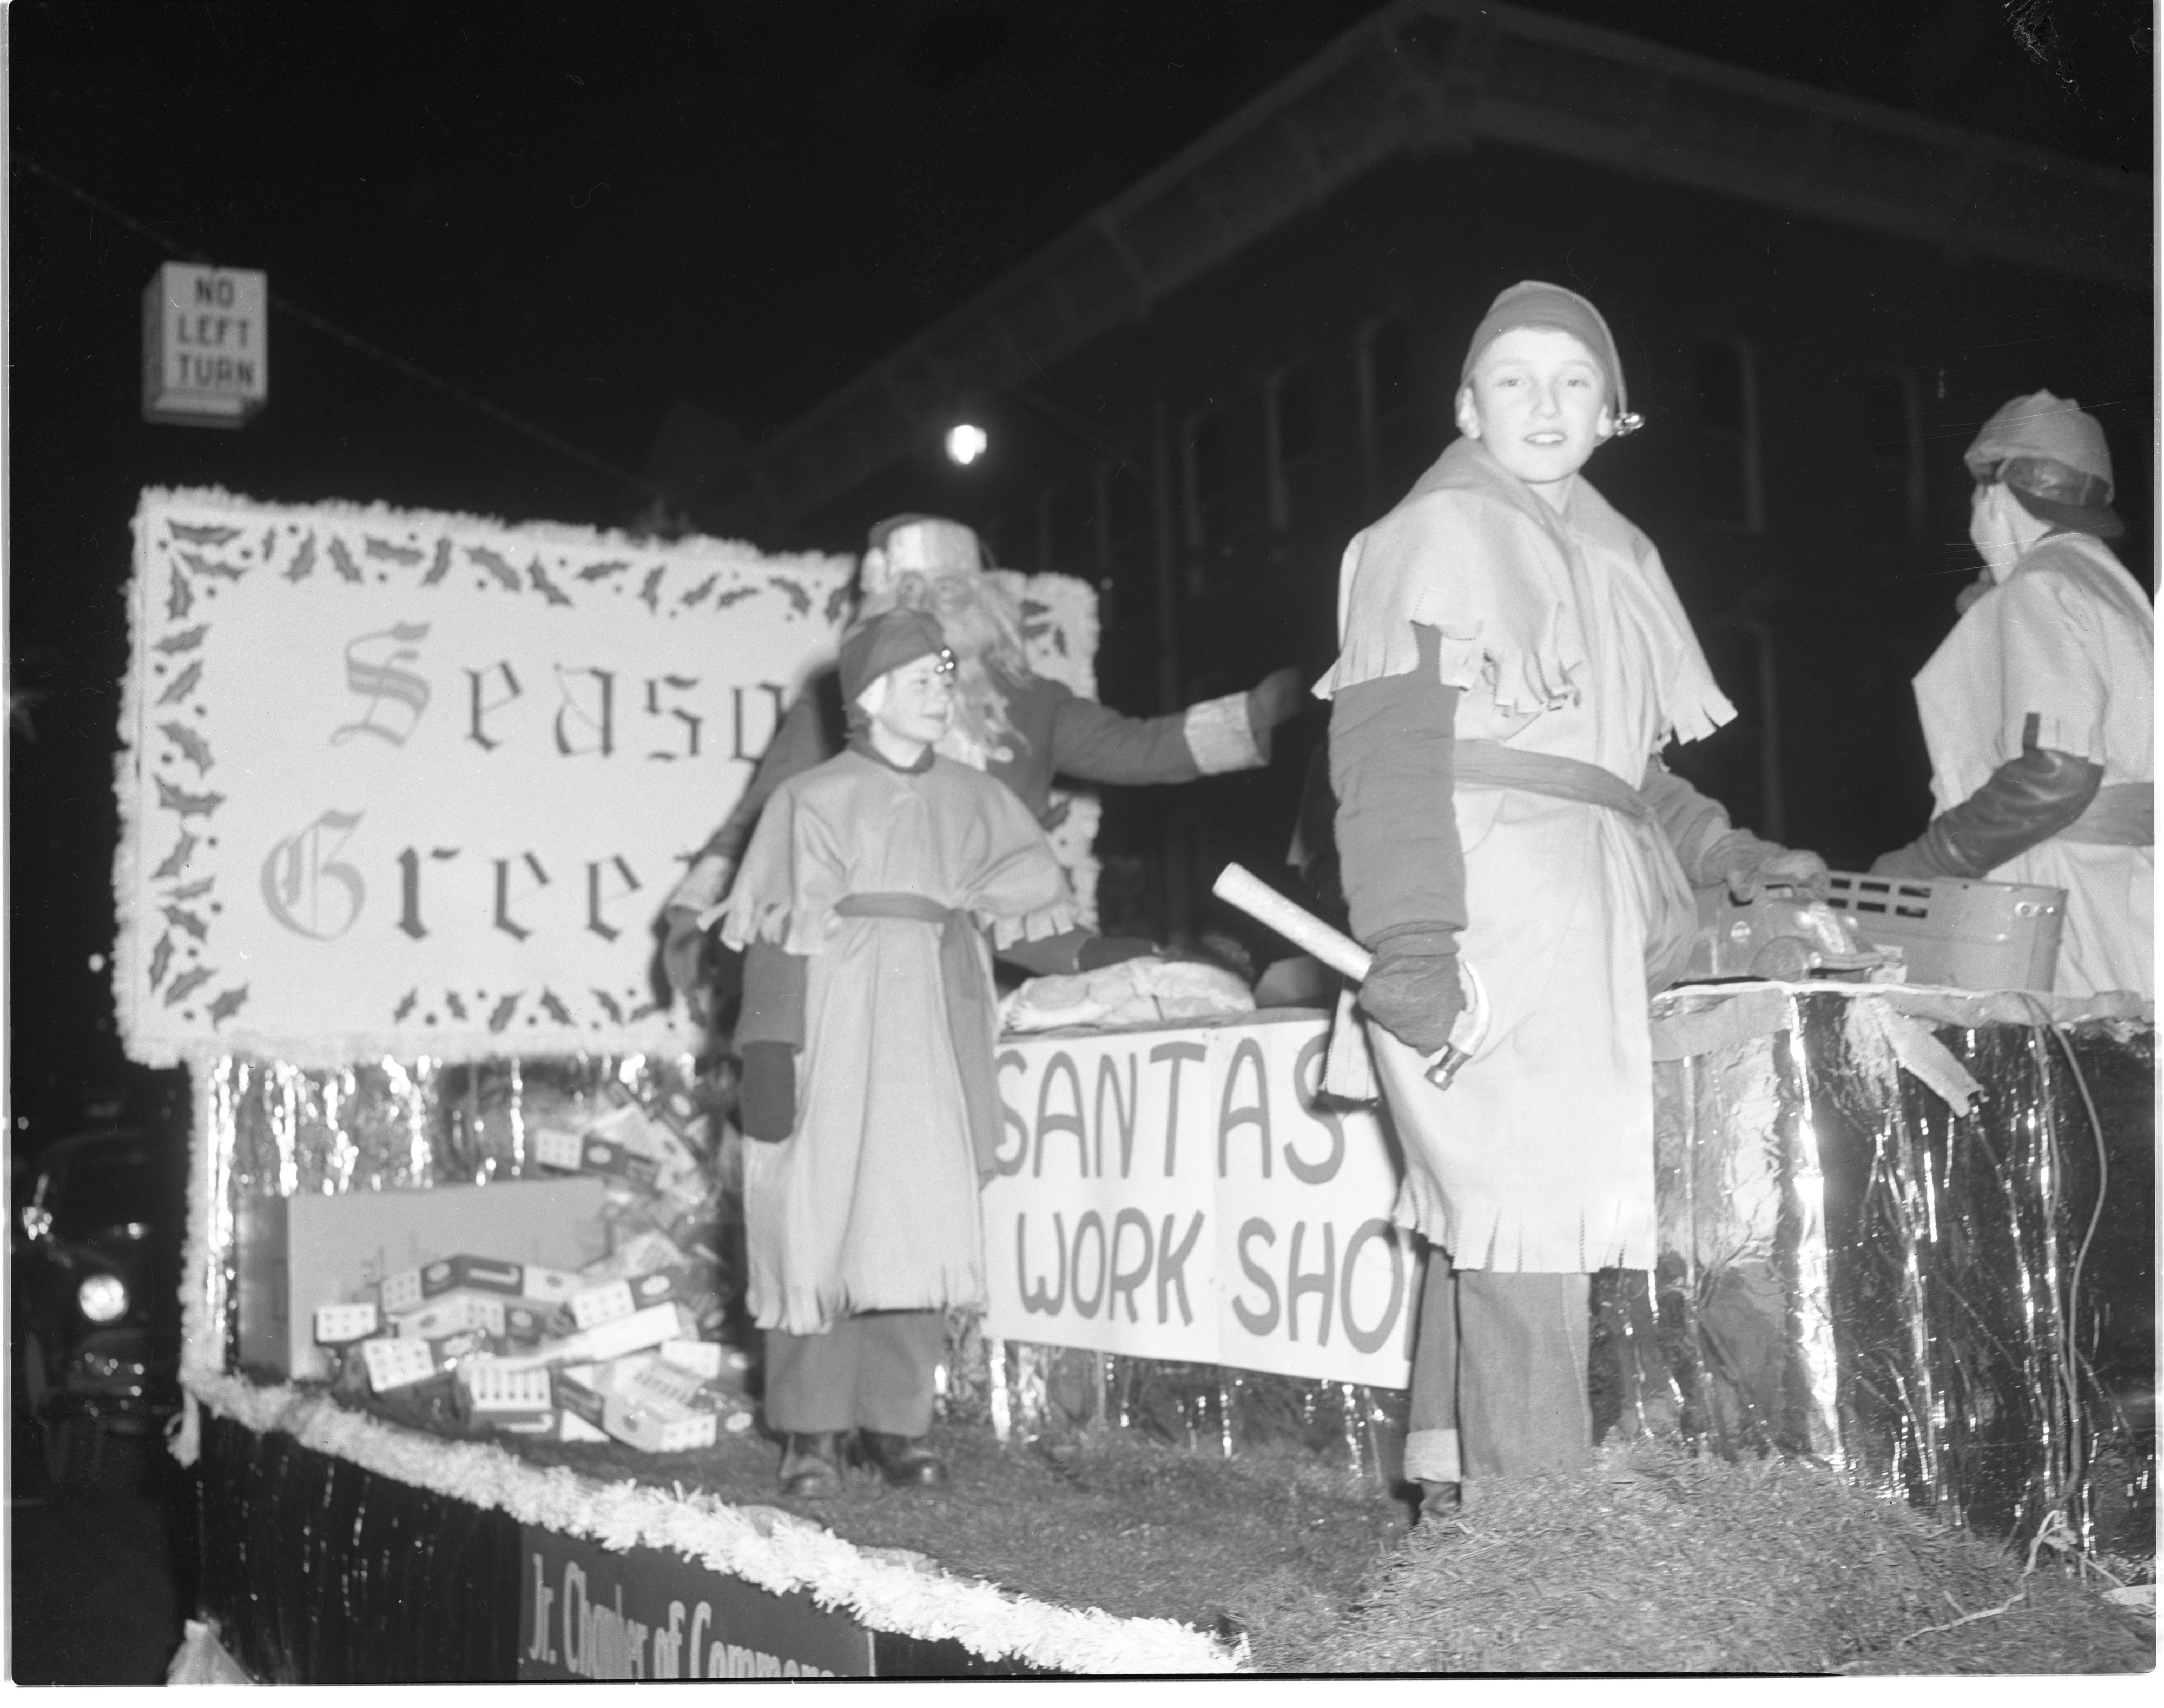 Ypsilanti Christmas Parade - Junior Chamber of Commerce Float, December 1954 image